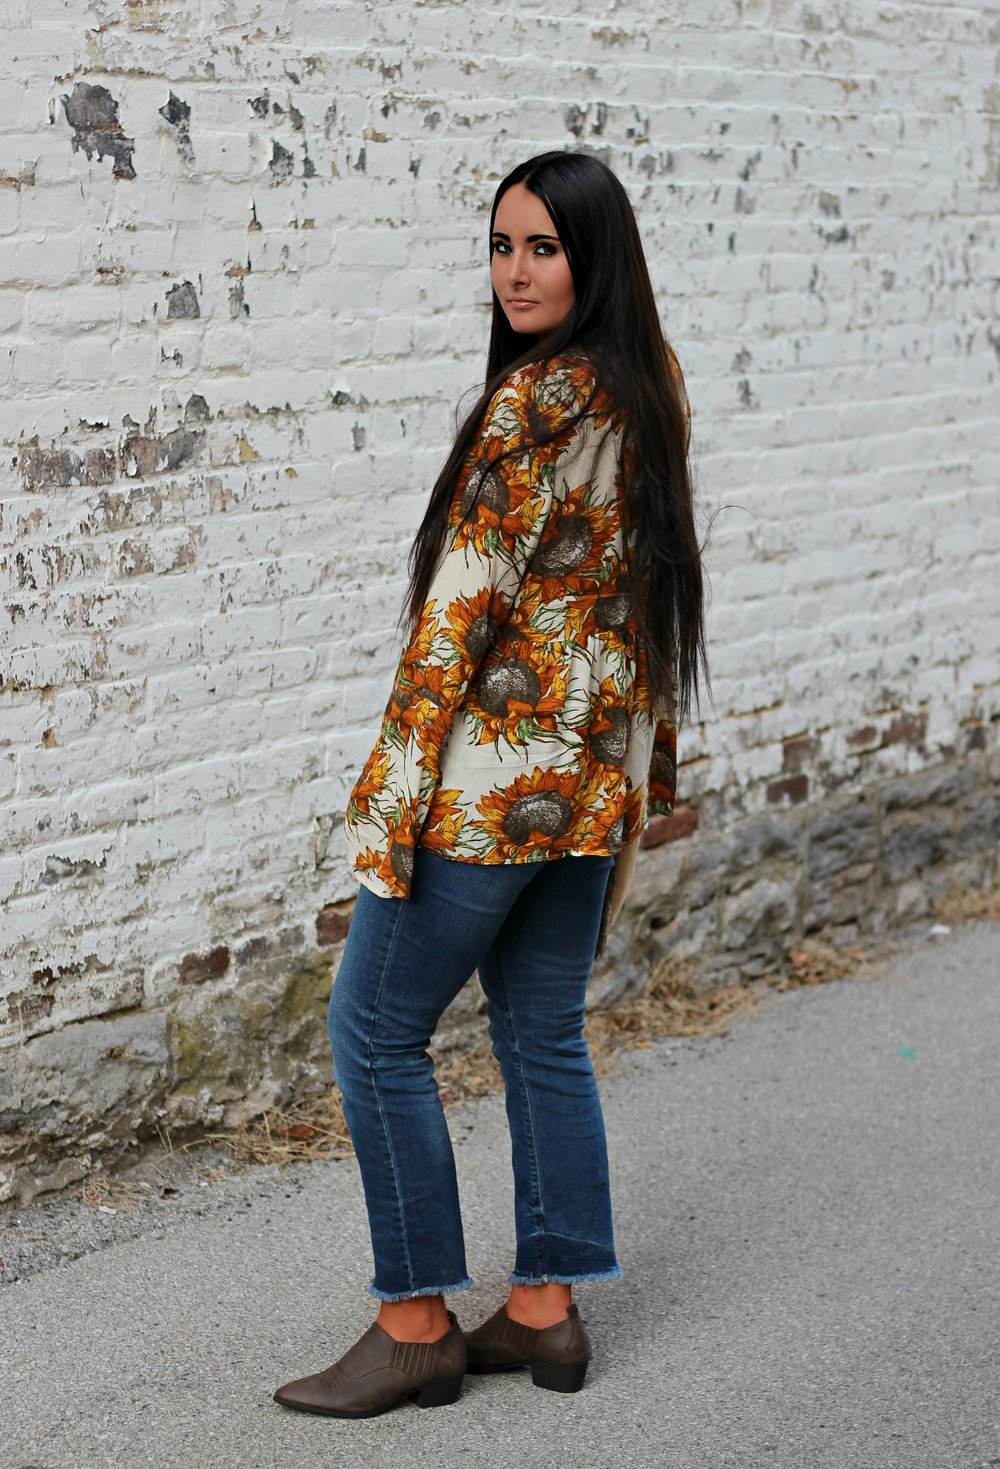 20bab36a3d2 Sunflower lace-up peasant top: Umgee USA | Western booties: Target |  Cropped flare jeans: Old Navy (similar here) | Faux-fur tote: Anthropologie